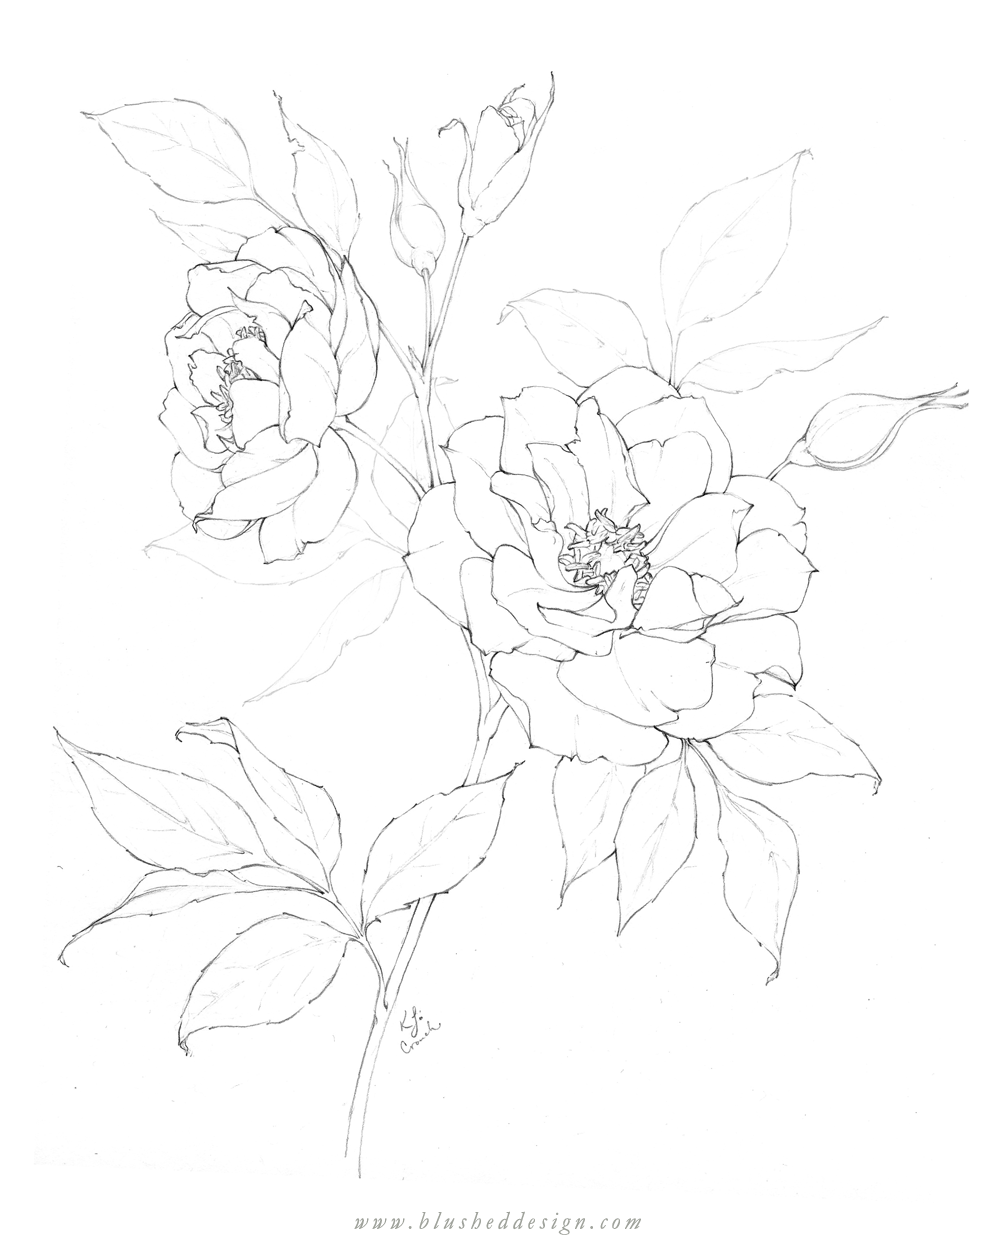 I love these beautiful spray roses at peek bloom!  Spray and garden roses are under-rated in my opinion.  Botanical illustration featuring whimsical rose pencil drawing by Katrina of Blushed Design. #floraldrawing #flowerdrawing #botanicalillustration #gardenroses